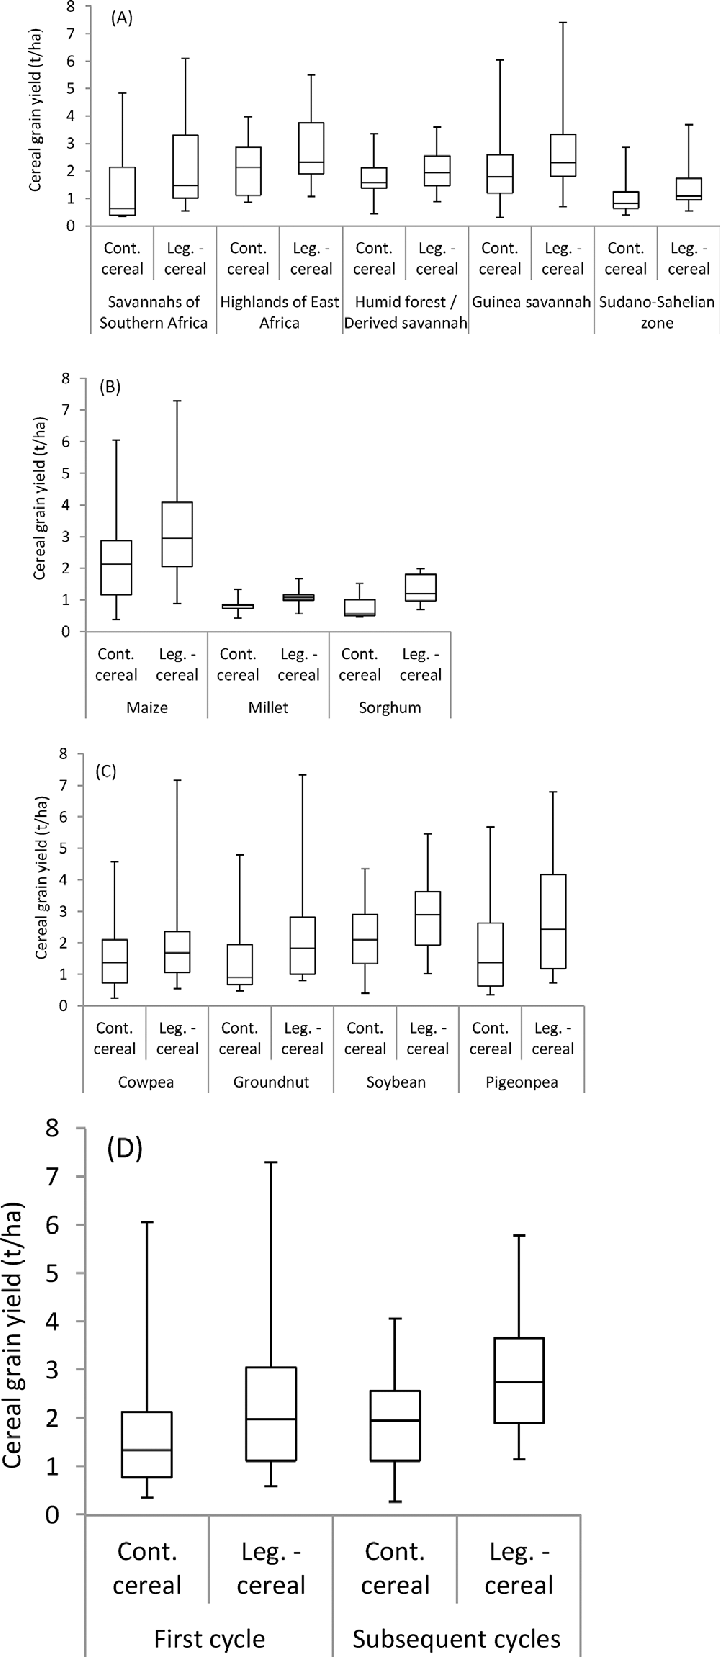 medium resolution of box plots of cereal grain yield in continuous cont cereal and legume